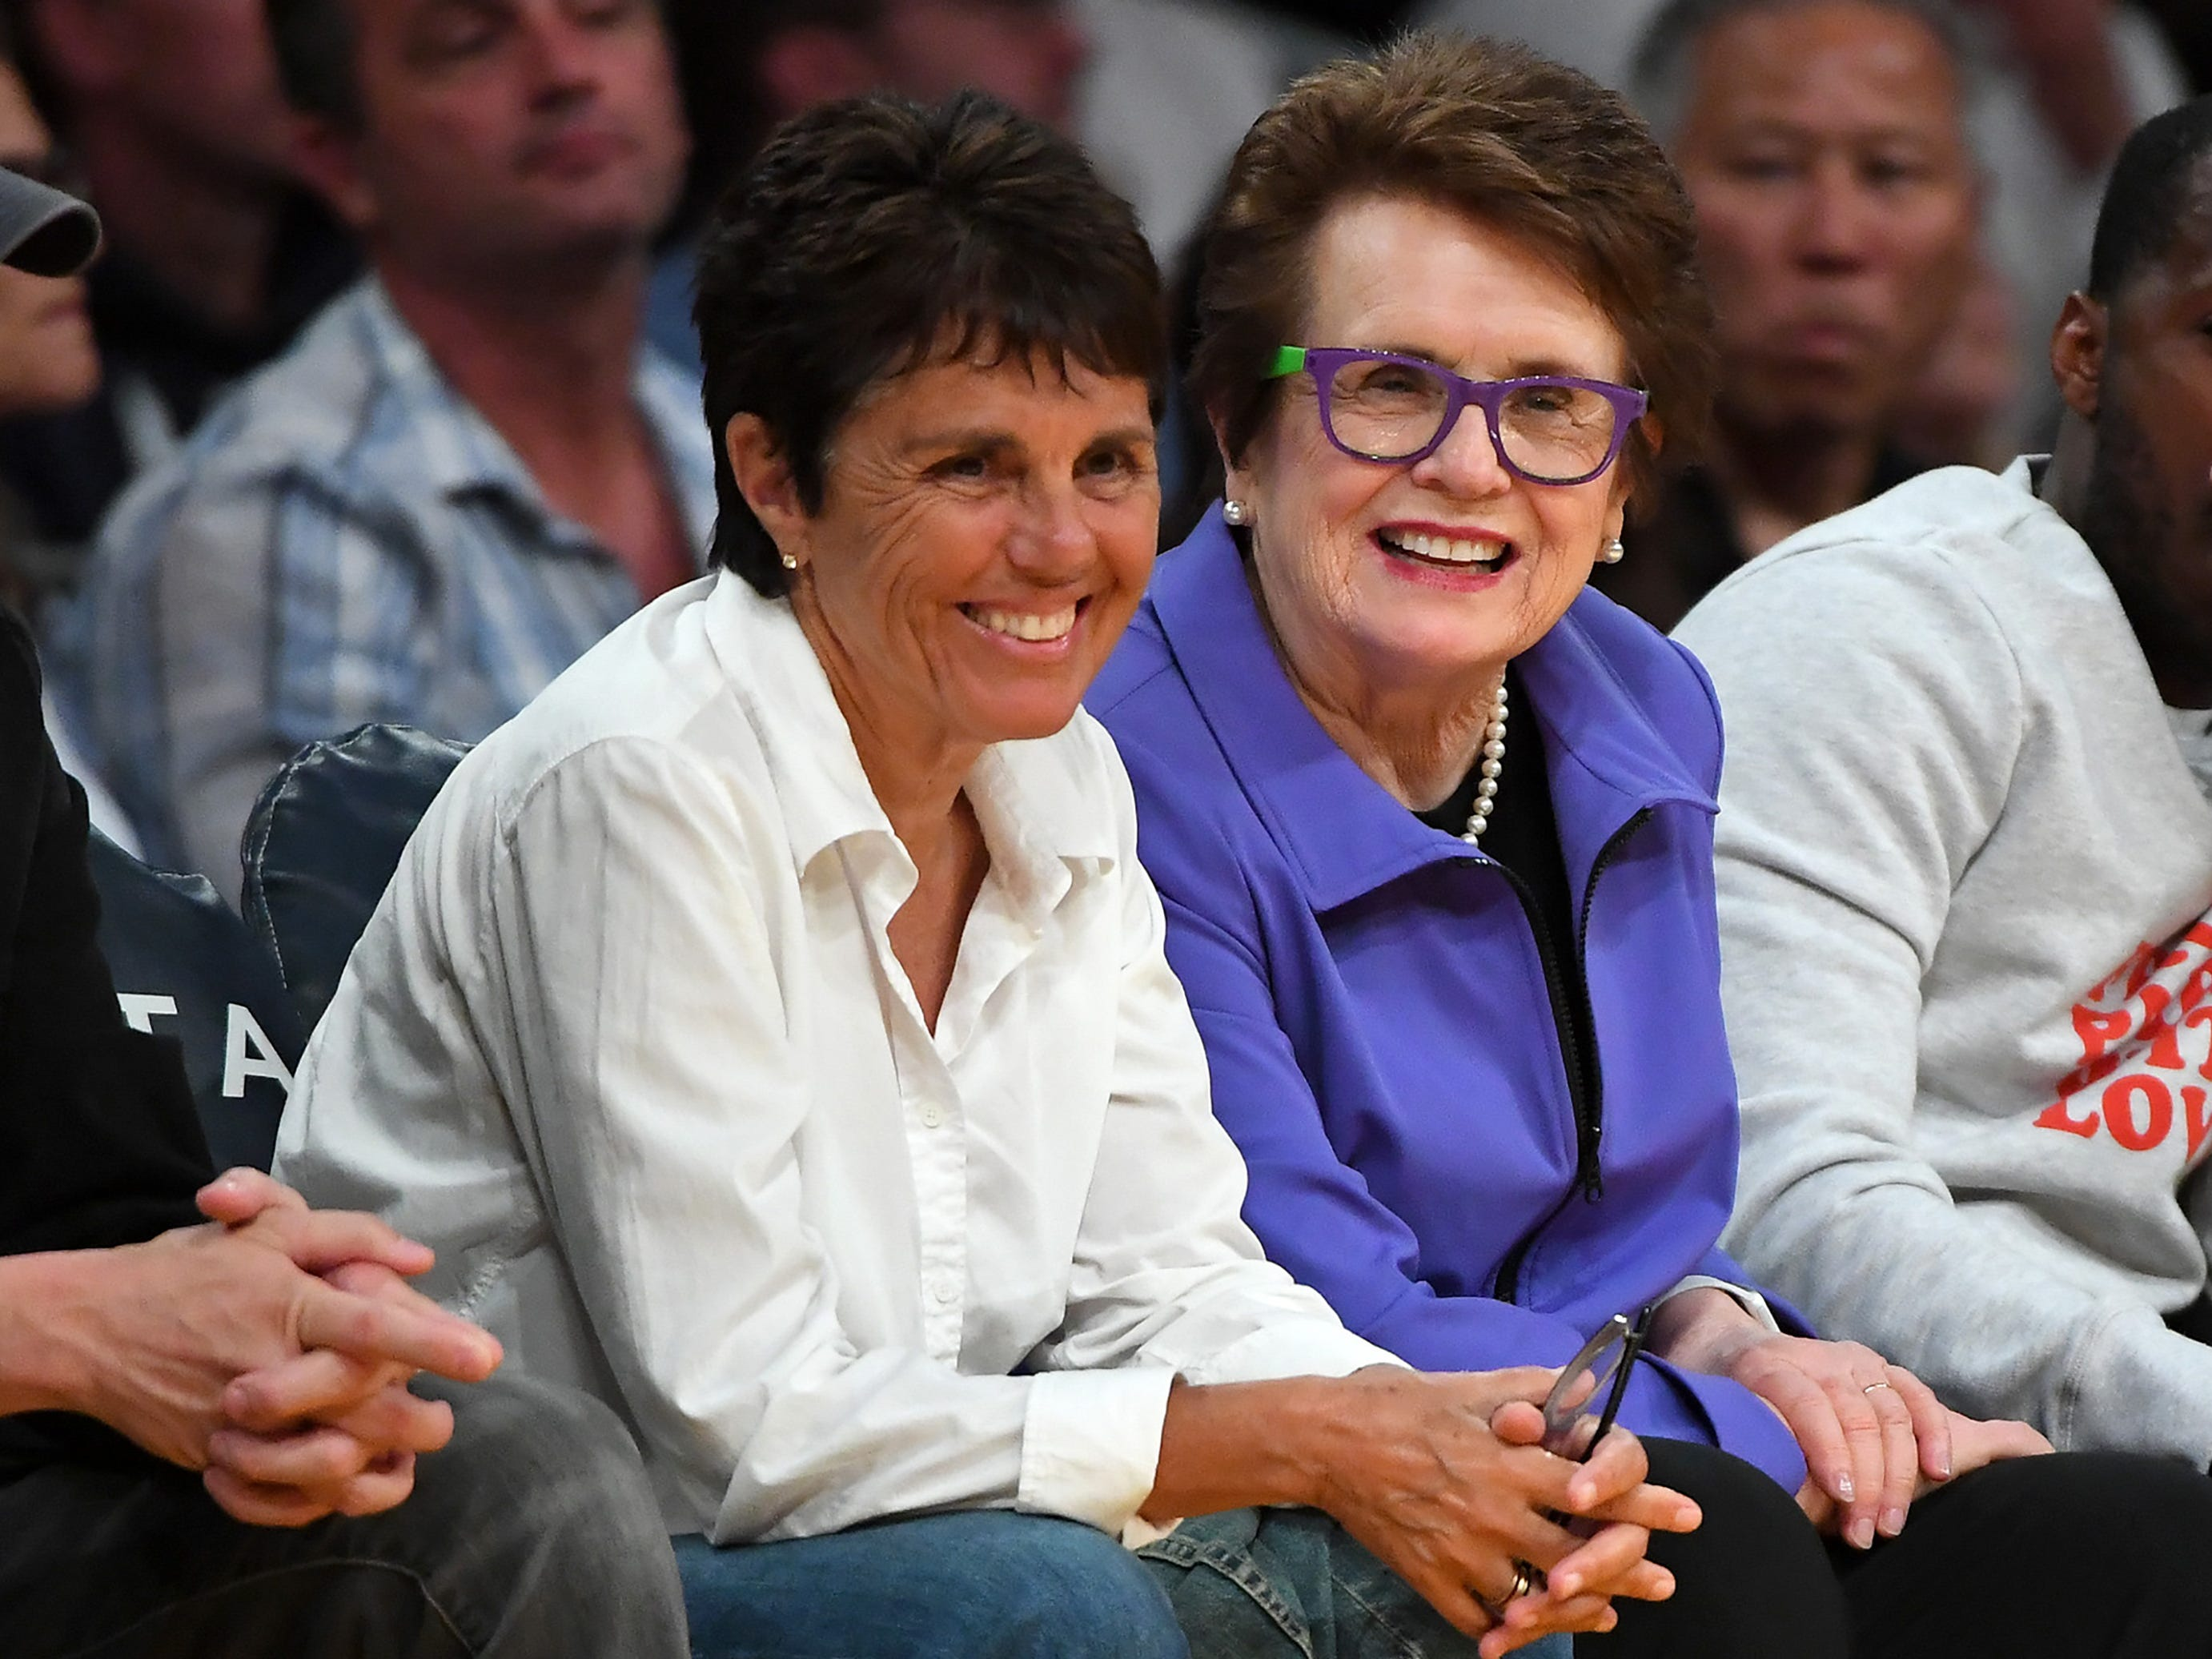 March 29: Tennis legend Billie Jean King, right, and partner Ilana Kloss take in the Lakers game at Staples Center.